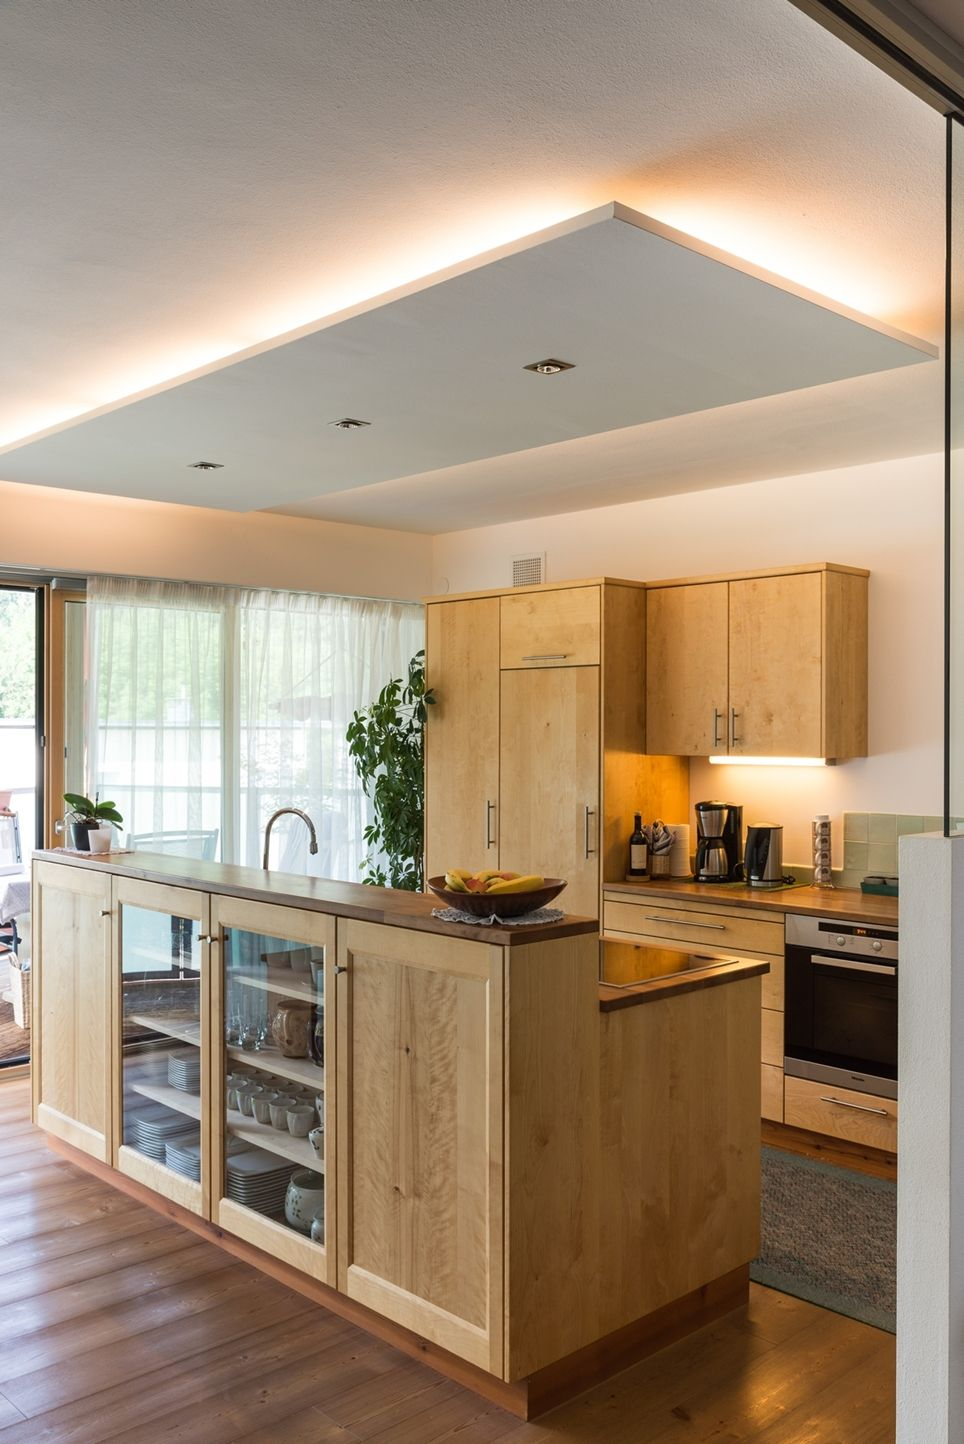 Photo of Kitchen in solid birch Lunger South Tyrol natural wood joinery